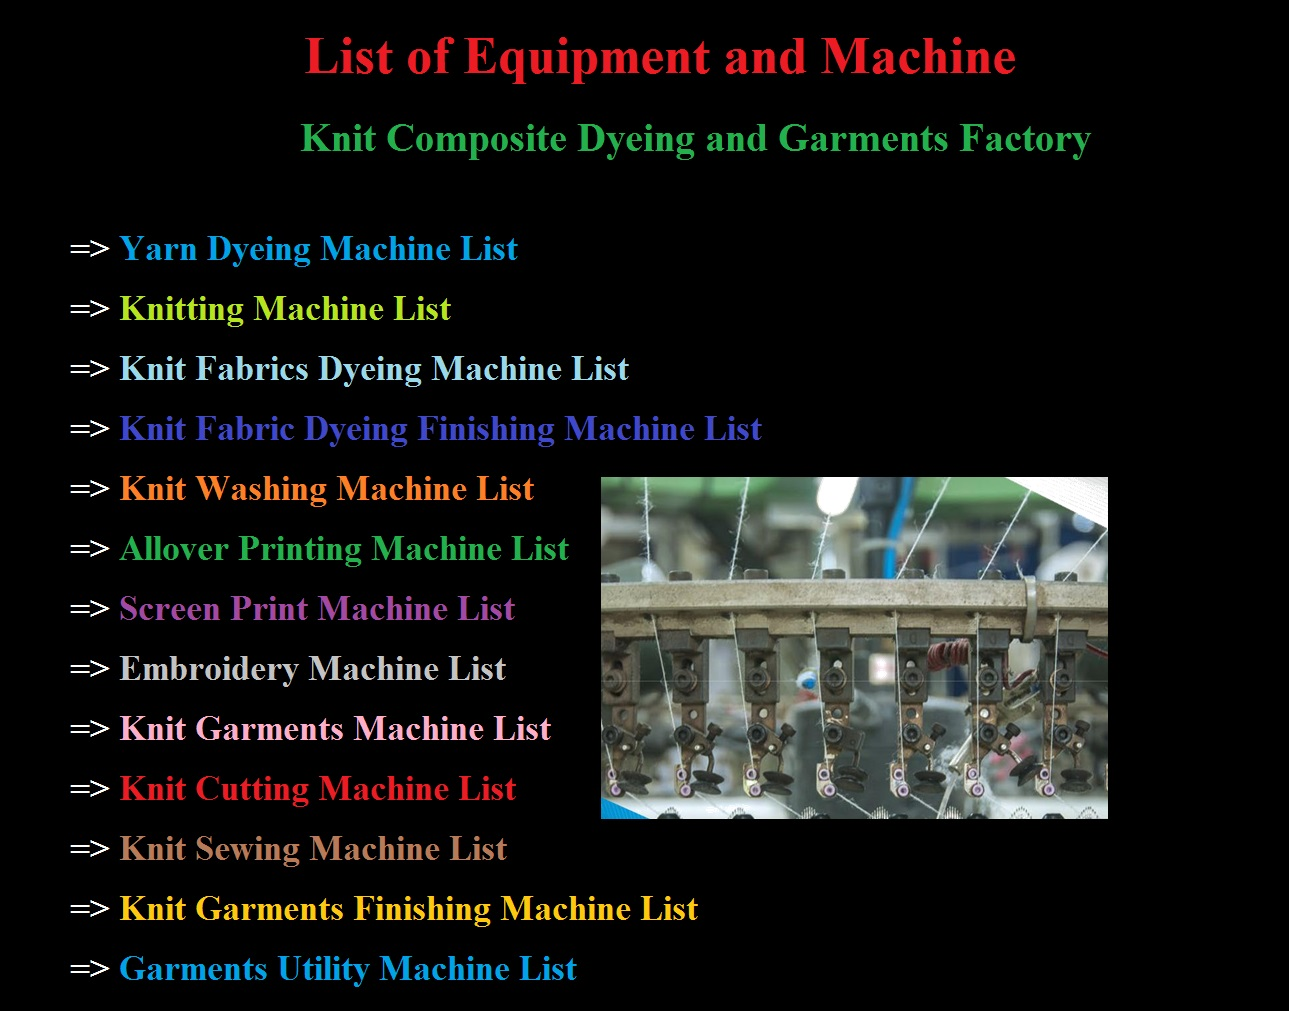 List of Machinery for Knit Composite Dyeing and Garments